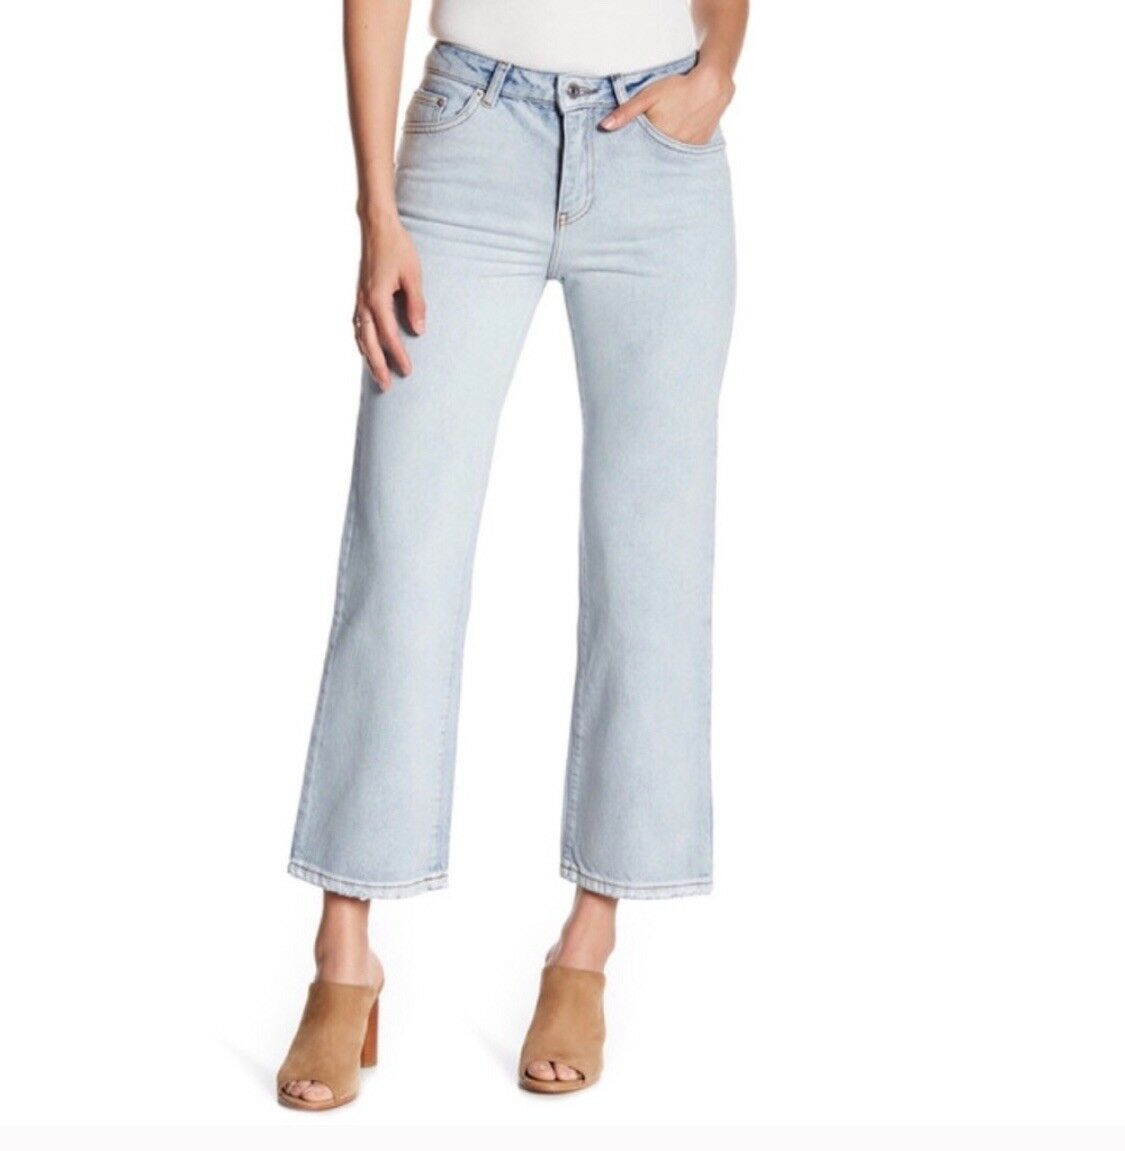 Sincerely Jules Jeans Elise Crop Flare High Rise Woman Size 29 New NWT